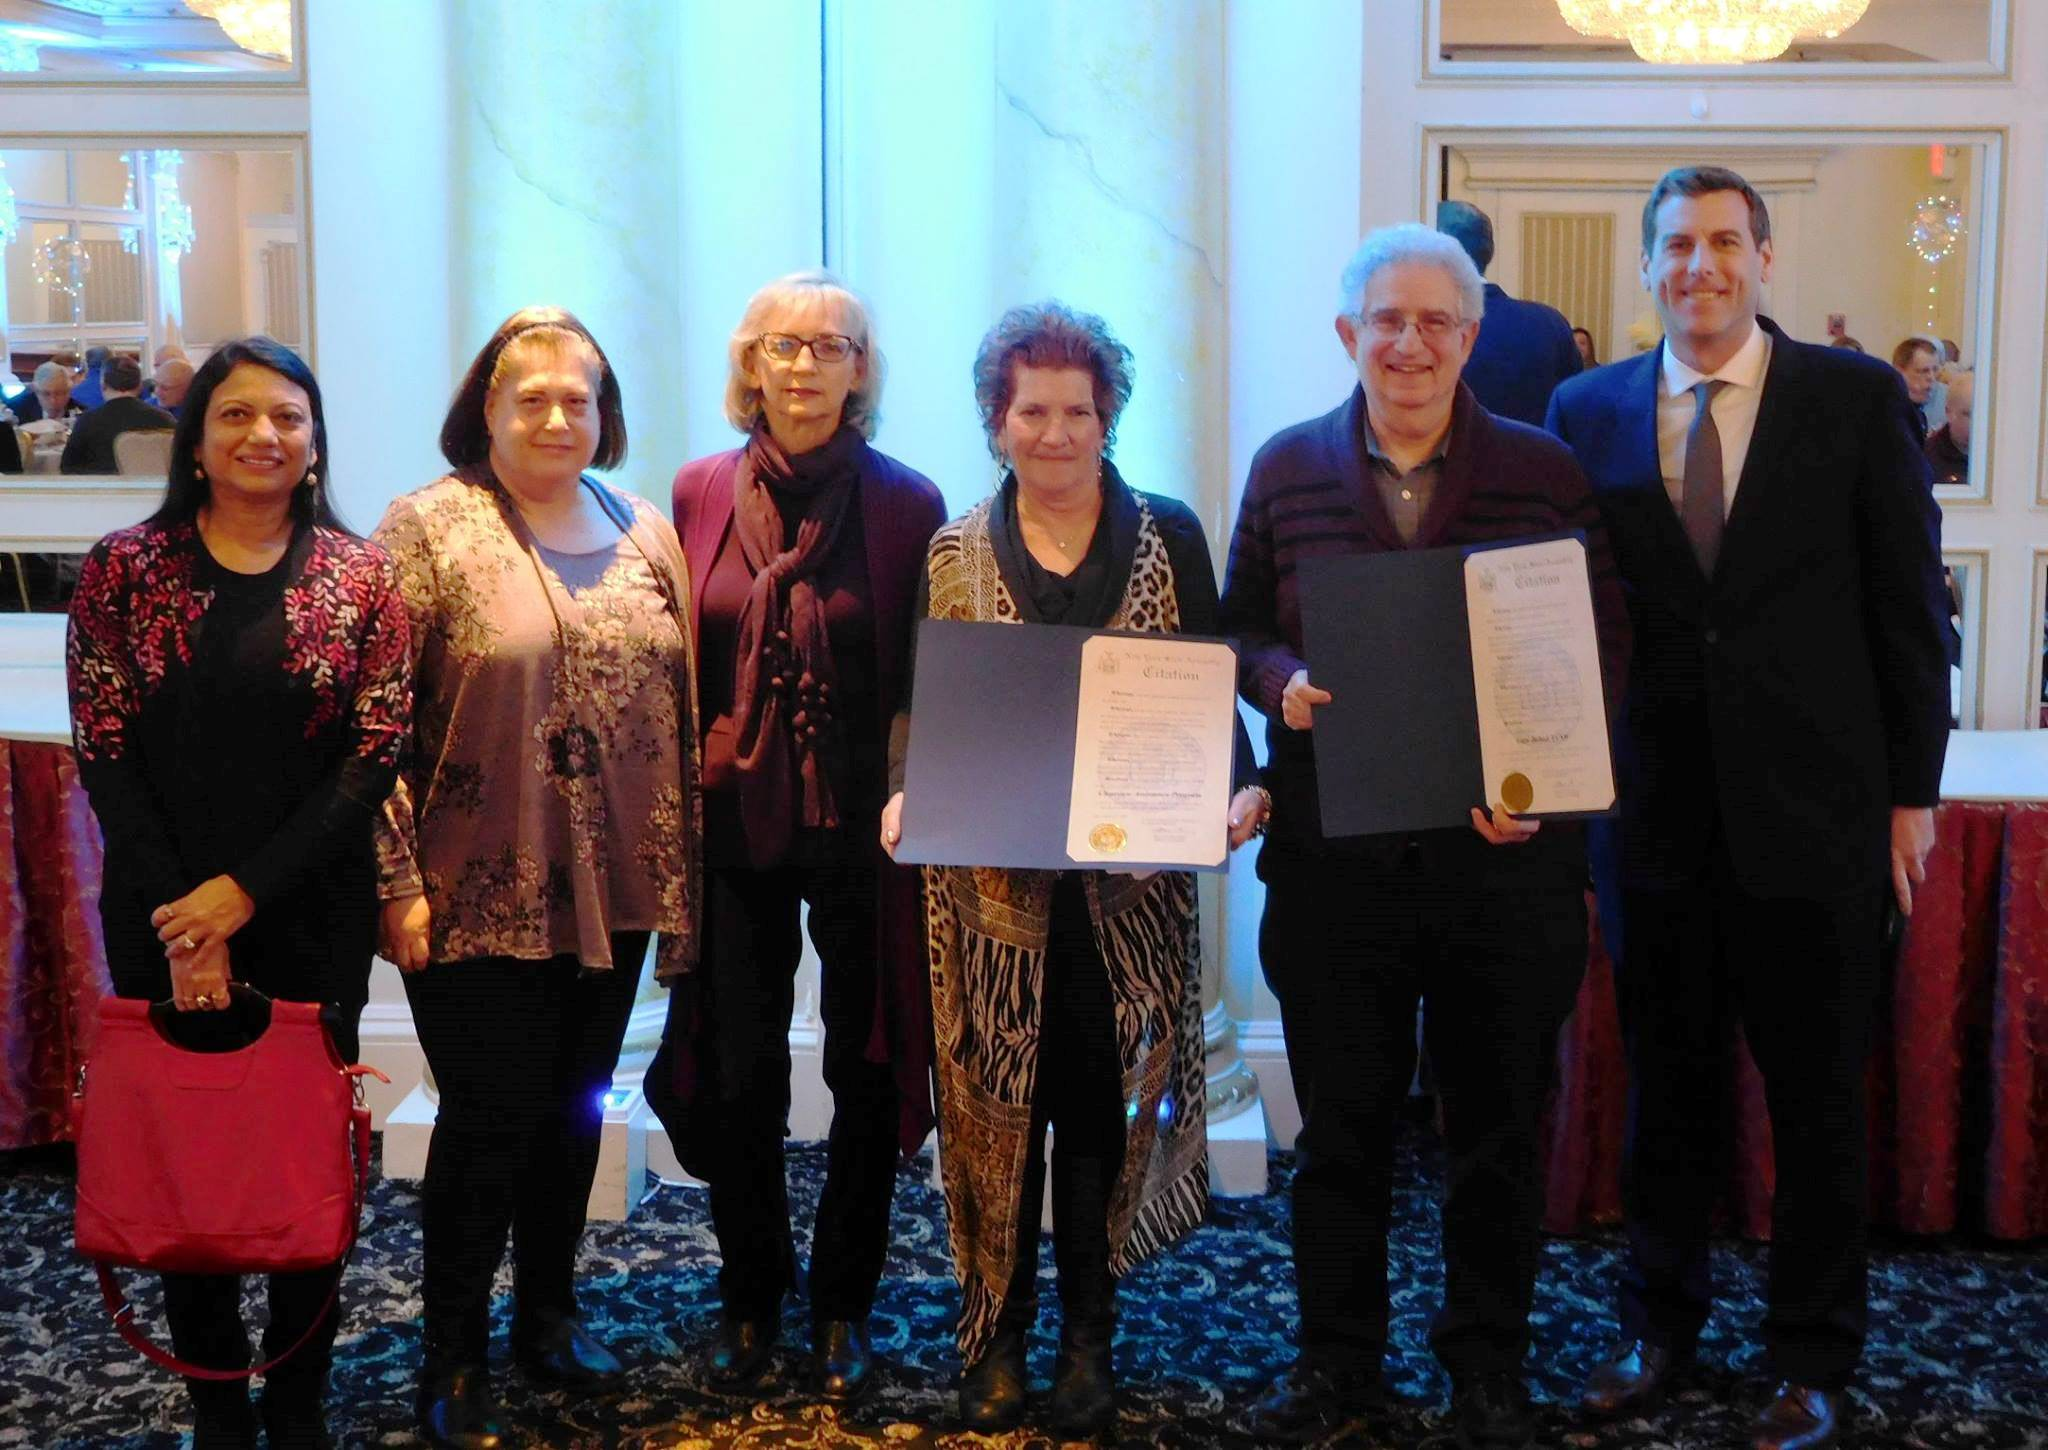 On January 25, 2019, Assemblyman Braunstein attended the 25th Anniversary Celebratory Luncheon for the Clearview Assistance Program (CAP). Assemblyman Braunstein presented a New York State Assembly Ci